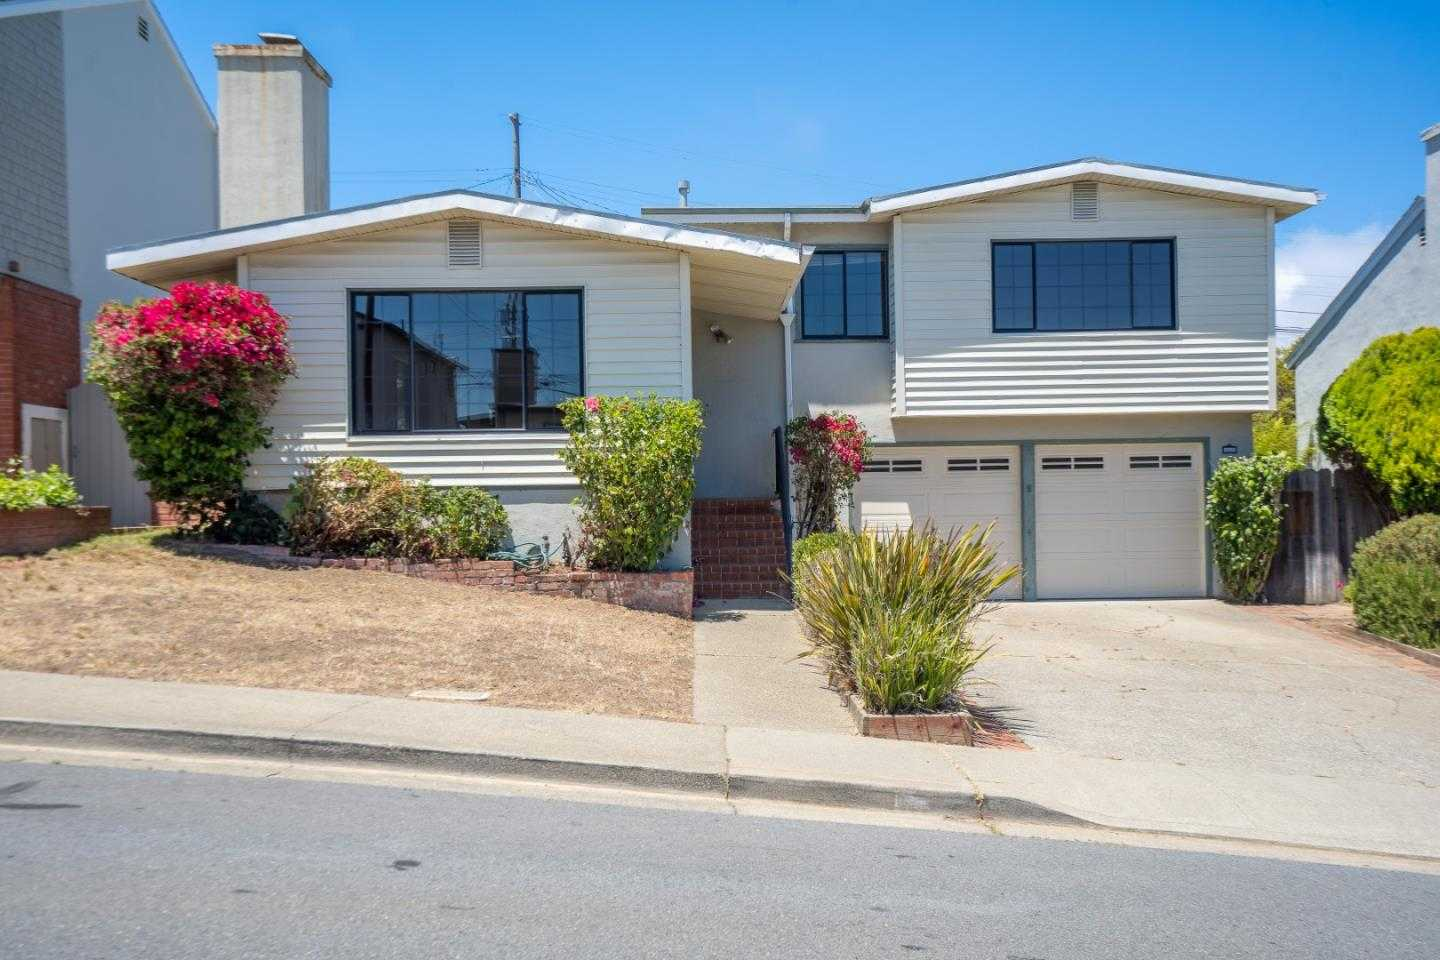 $1,298,000 - 4Br/2Ba -  for Sale in South San Francisco